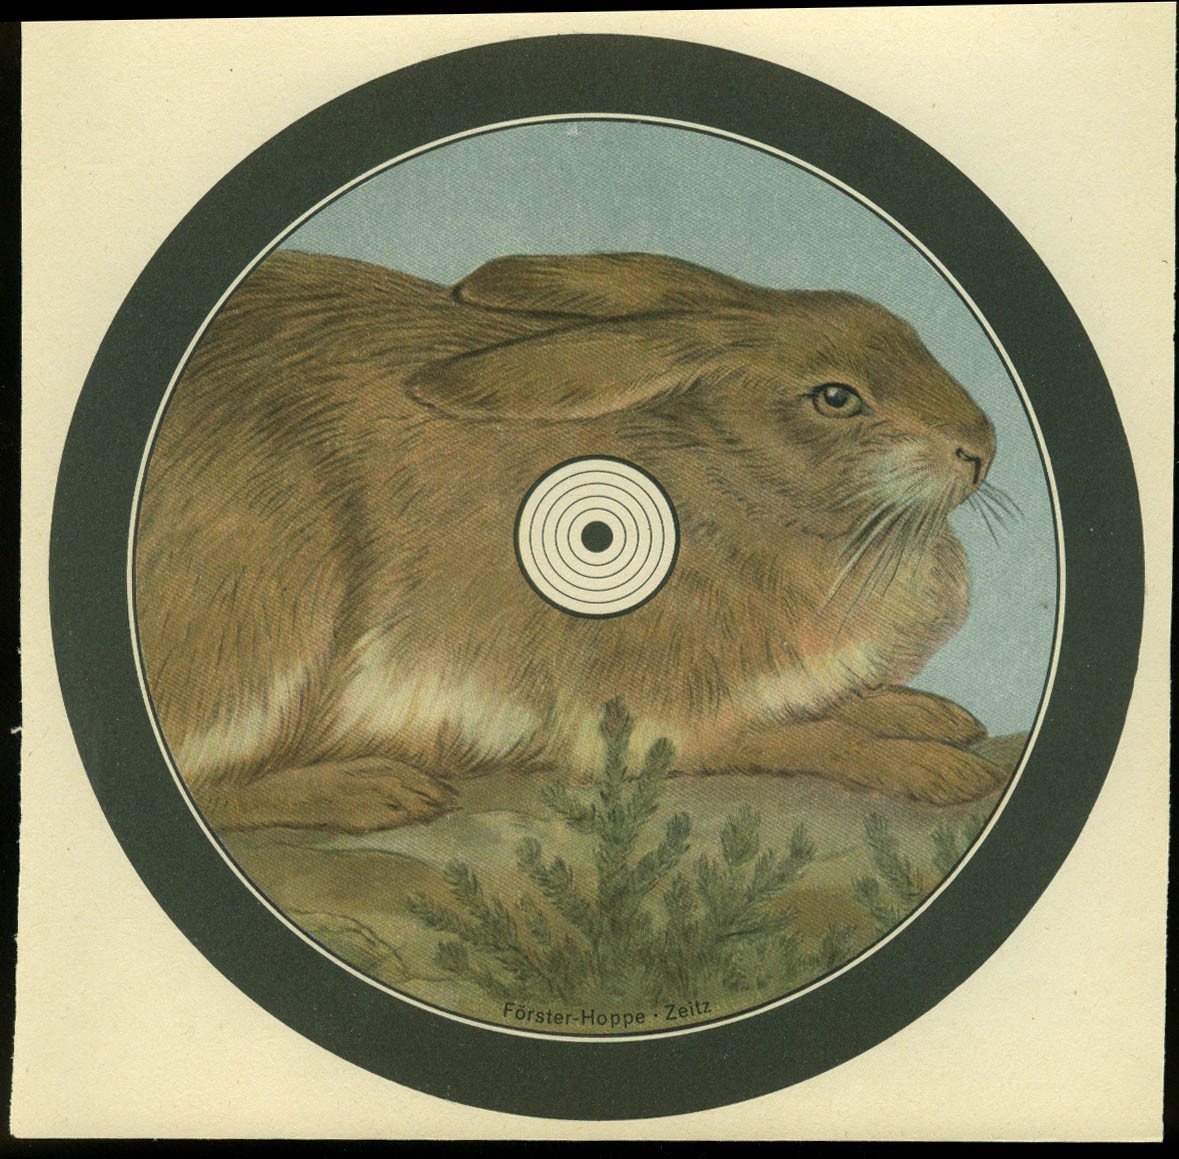 Rabbit or Hare shooting target German chromolithograph Forster-Hoppe Zeitz 1930s